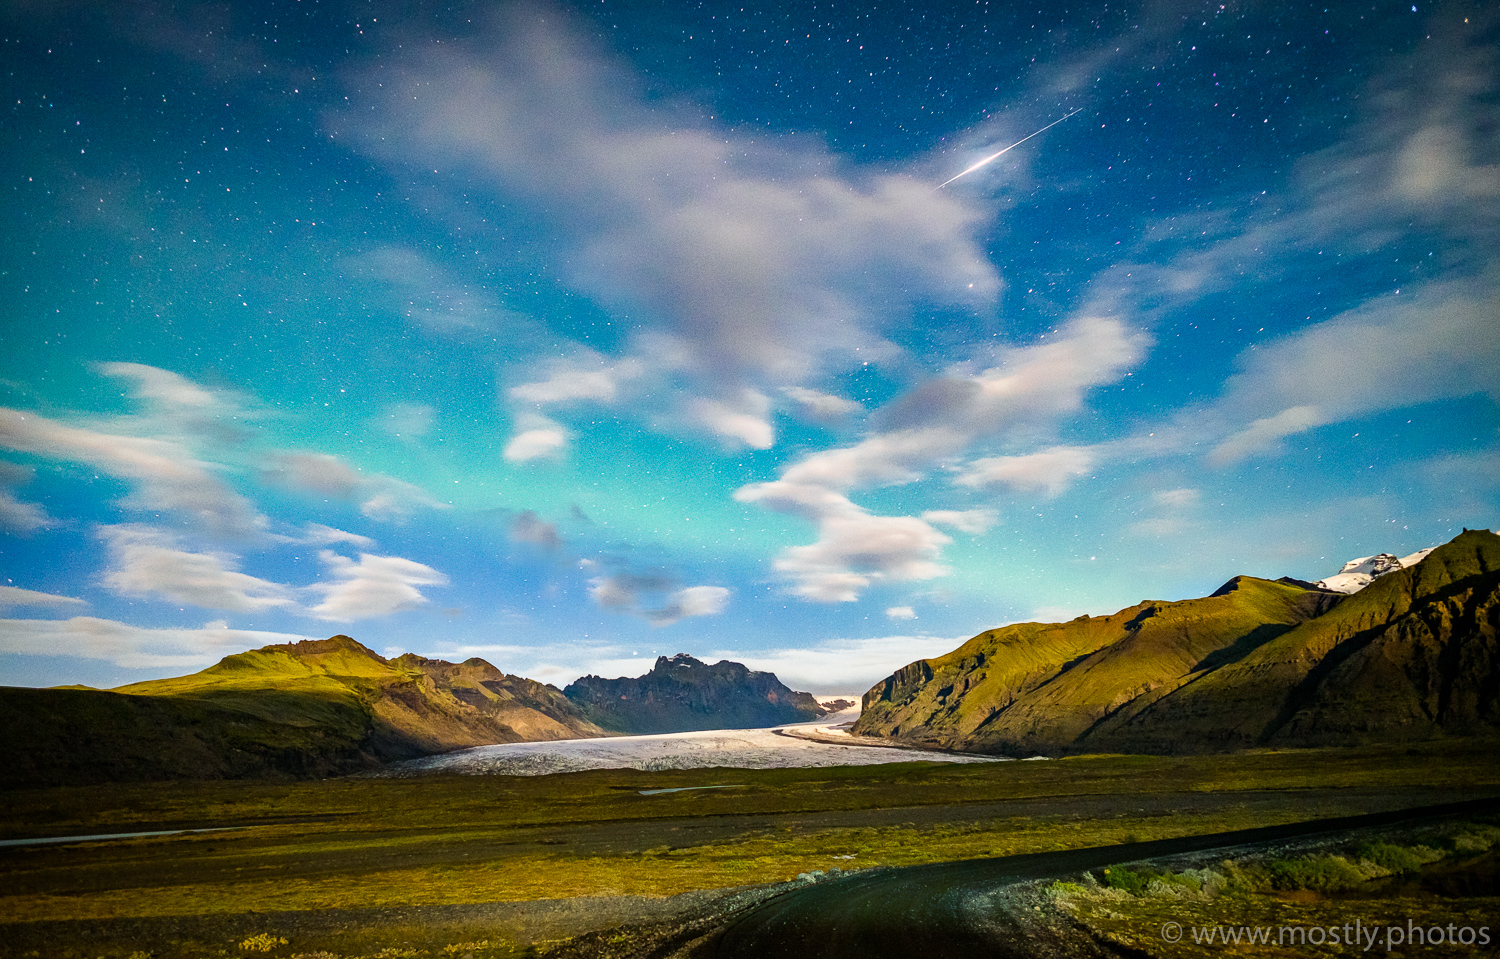 Fuji X-T1 - A hint of the Northern Lights above the Myrdalsjokull Ice Cap